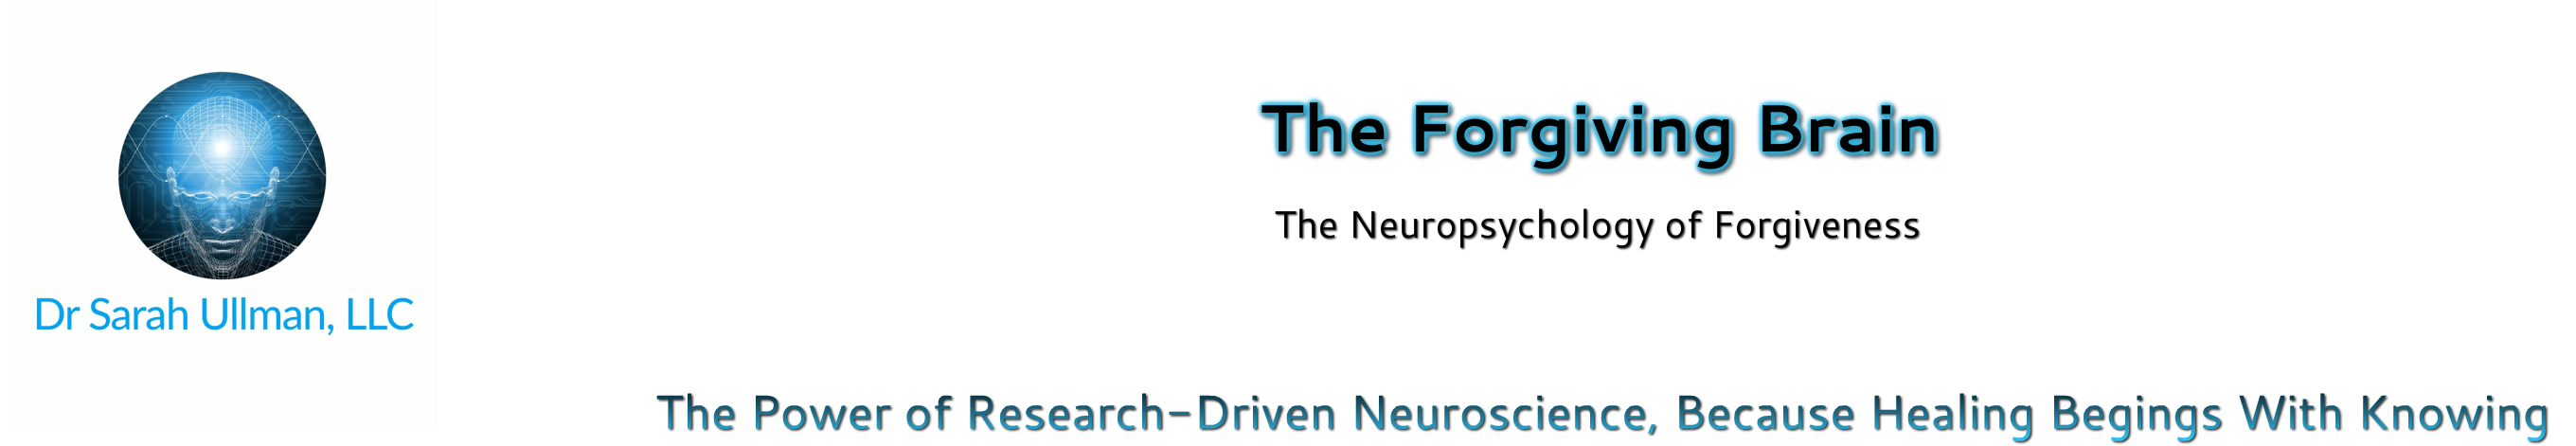 The Forgiving Brain